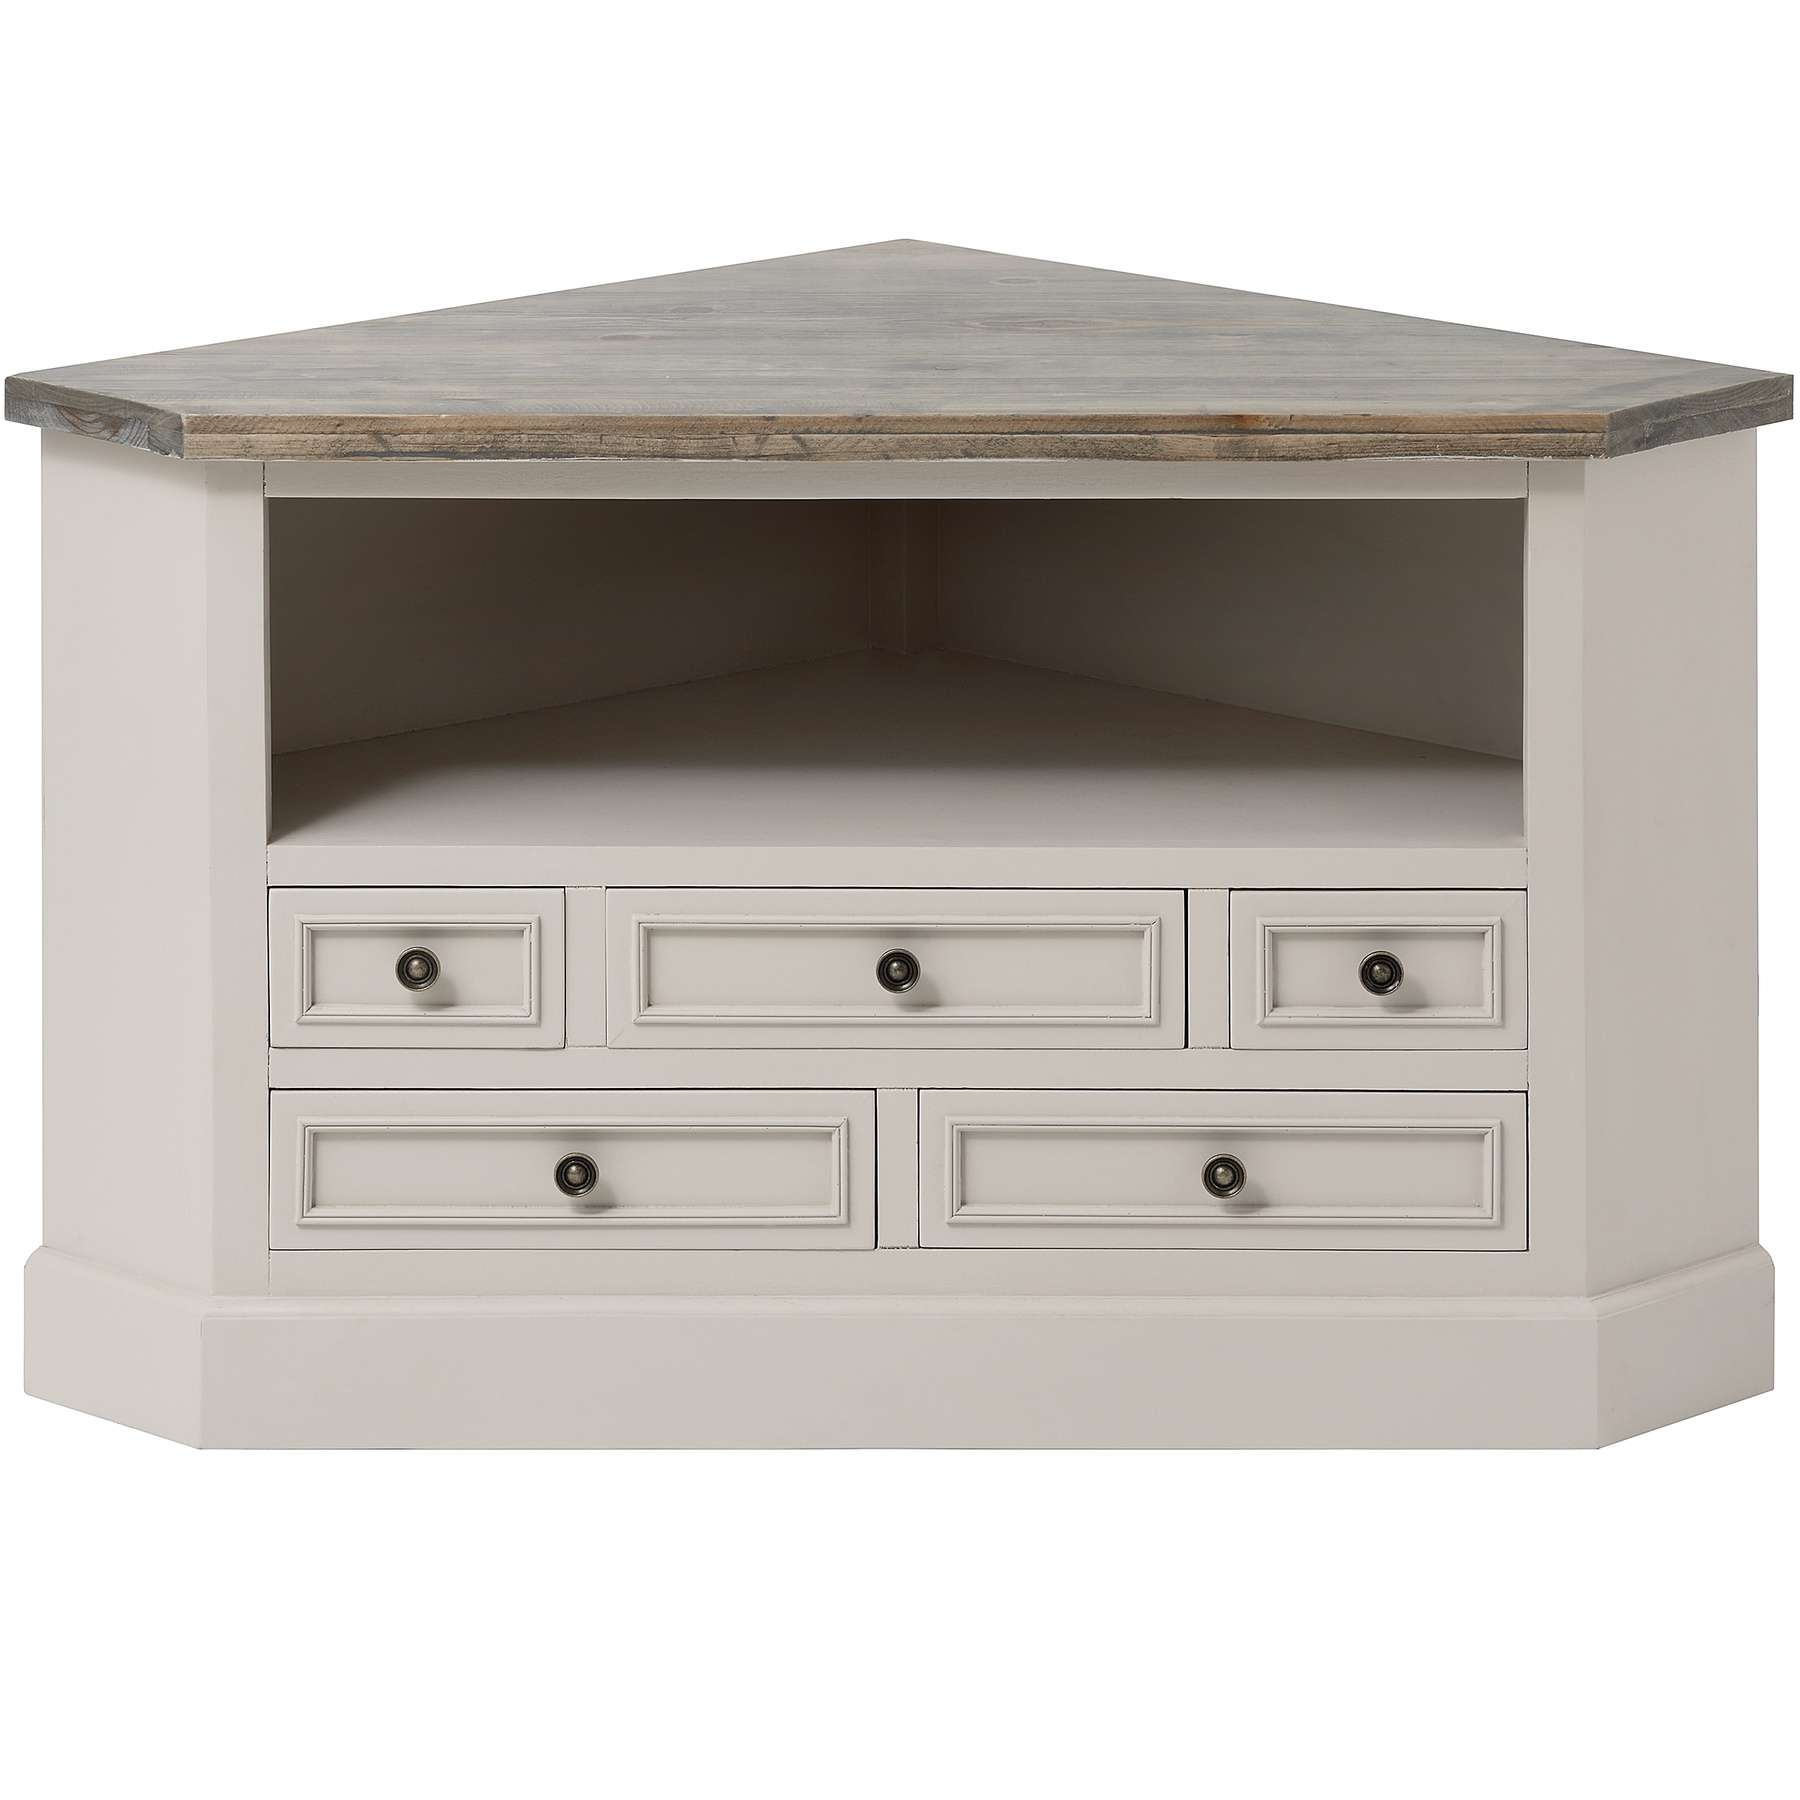 The Studley Collection Corner Tv Unit | From Baytree Interiors With White Corner Tv Cabinets (View 17 of 20)